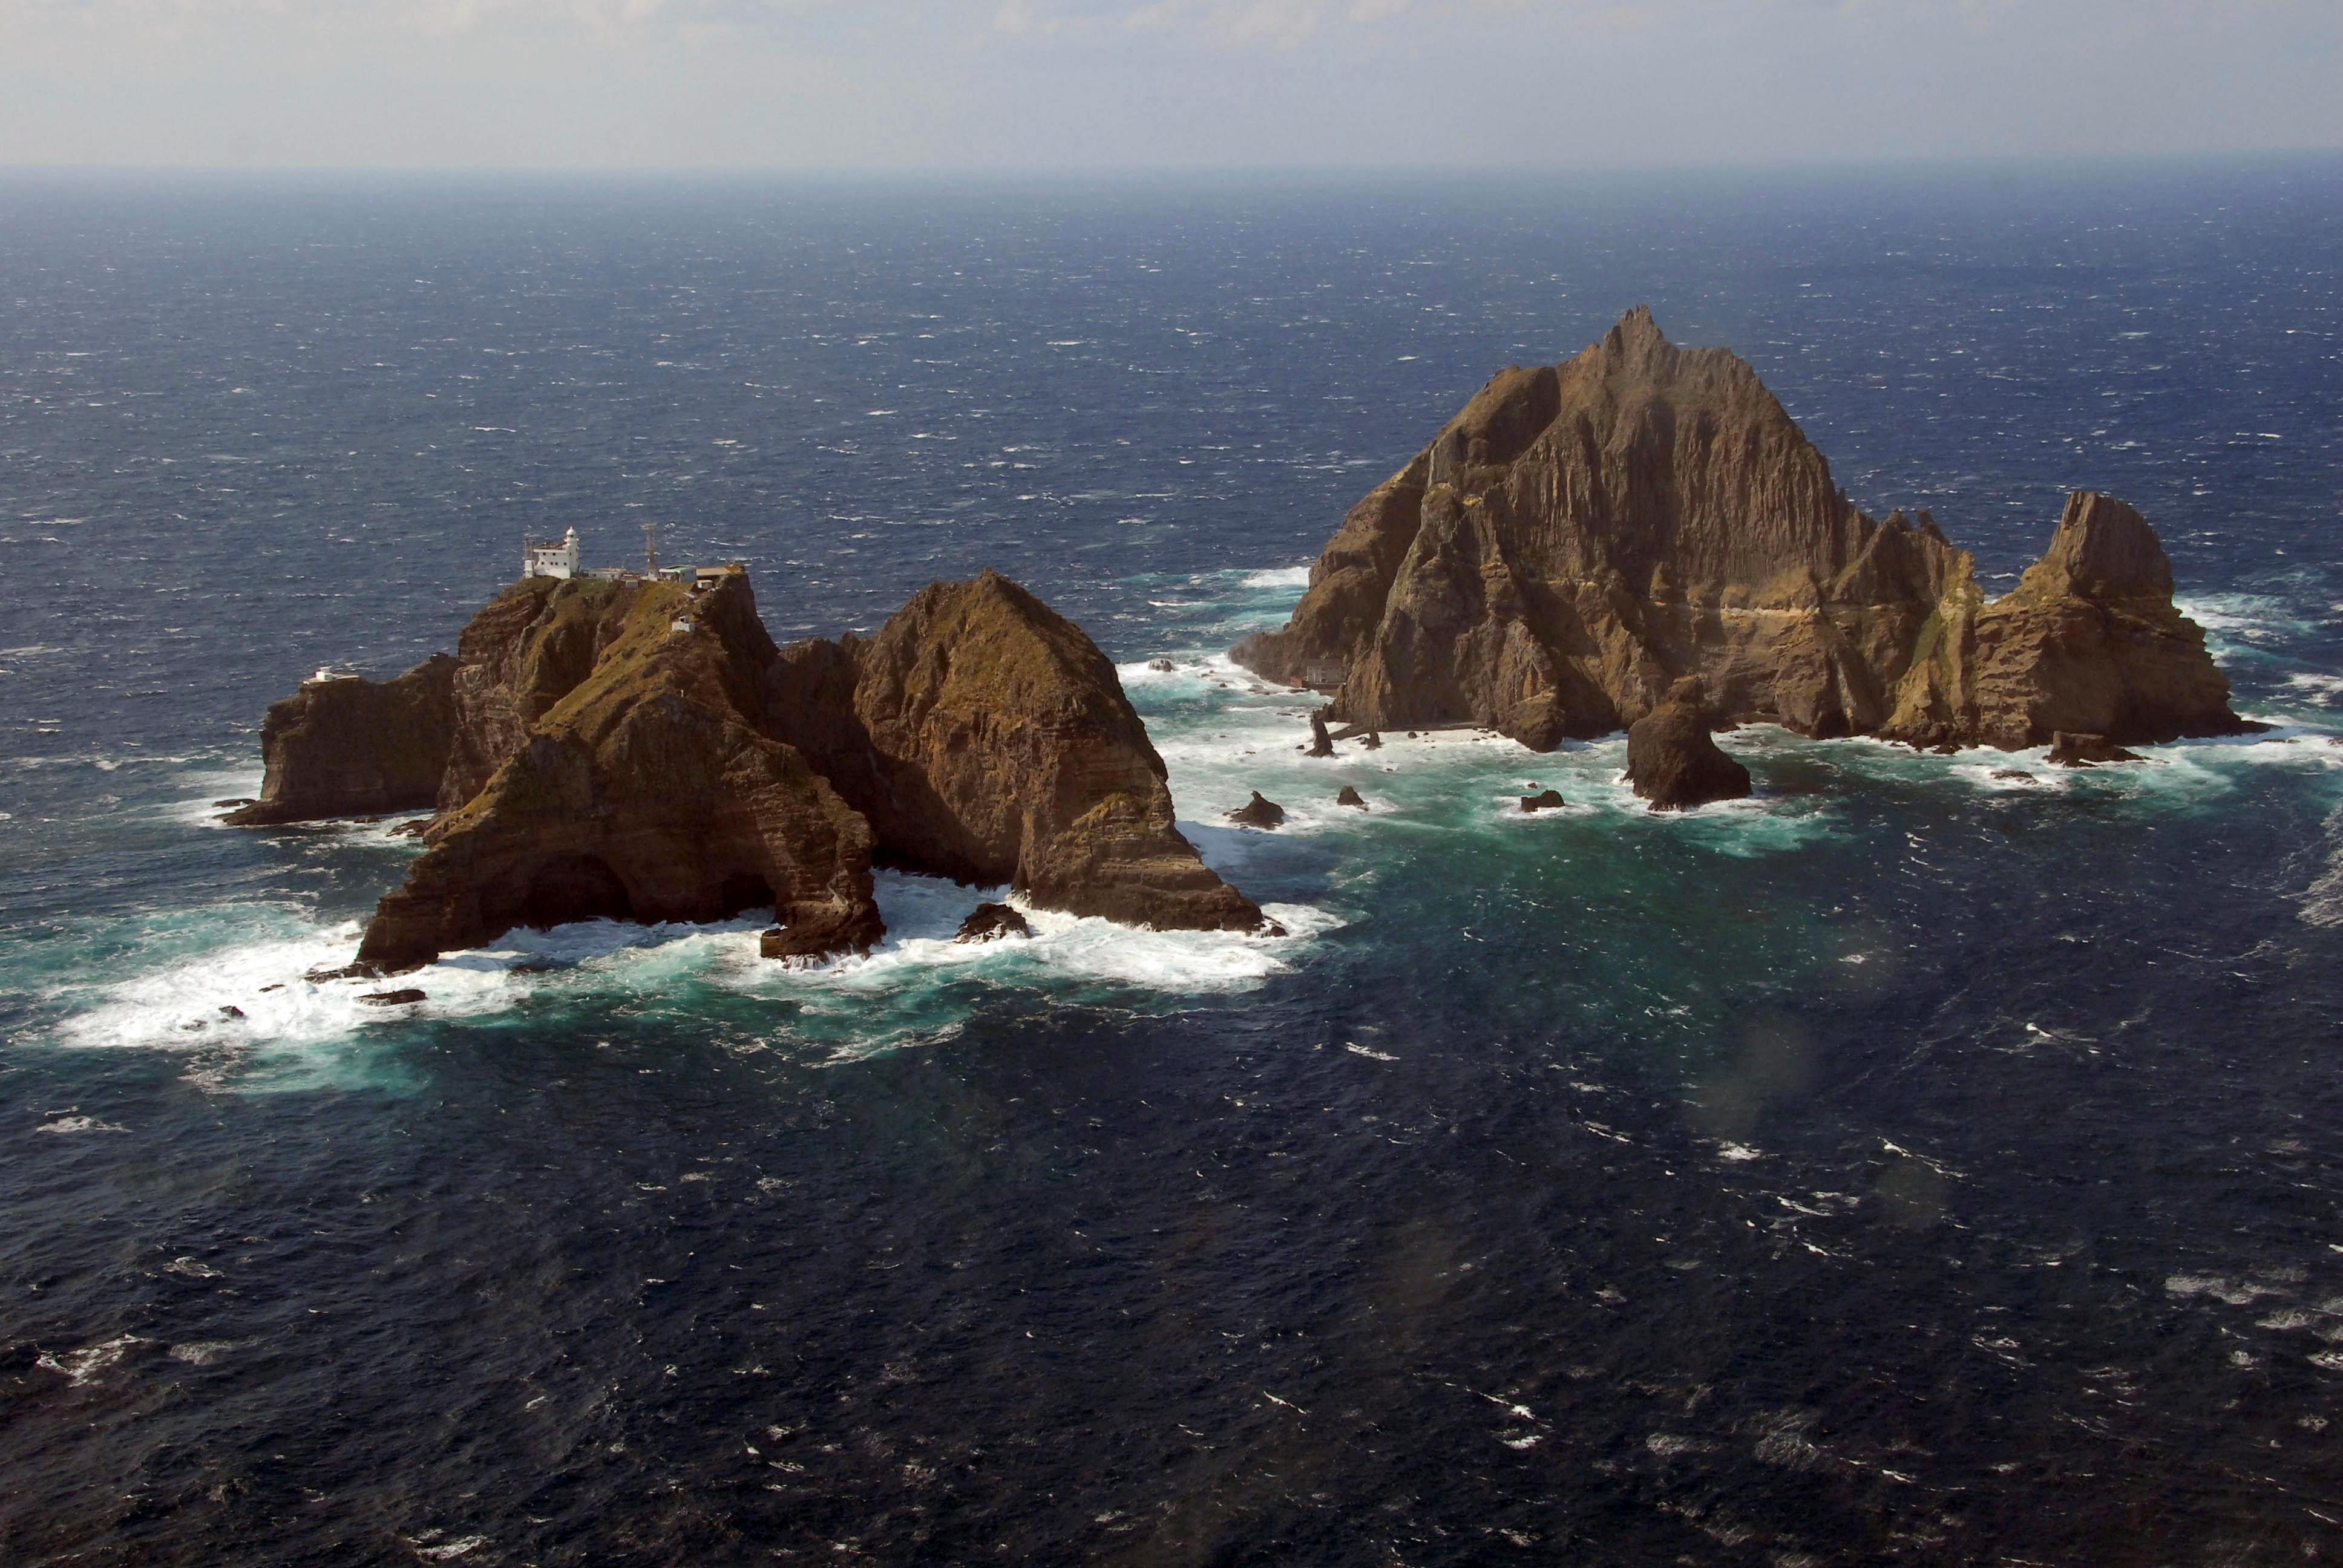 South Korea begins military drills around disputed island amid feud with Japan